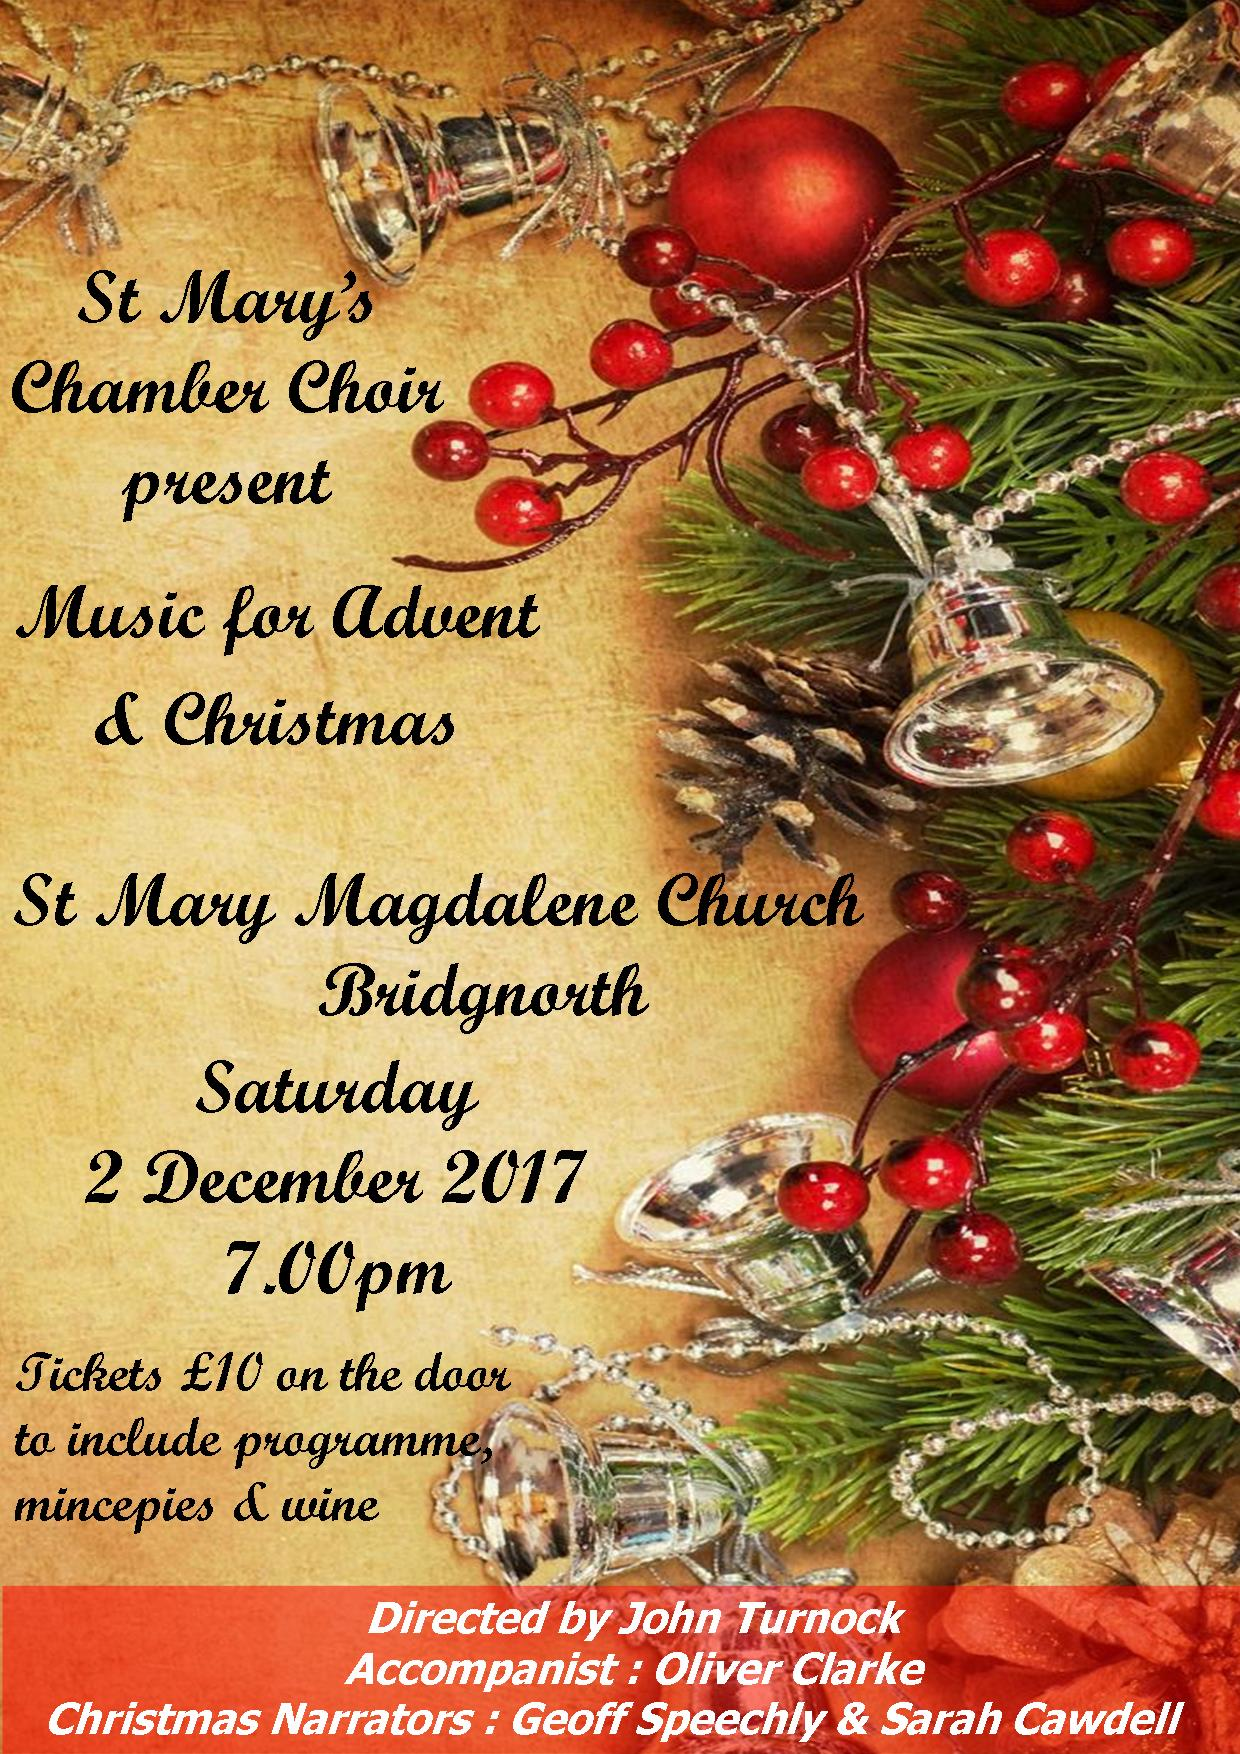 ST MARYS CHAMBER CHOIR CHRISTMAS CONCERT POSTER 2017